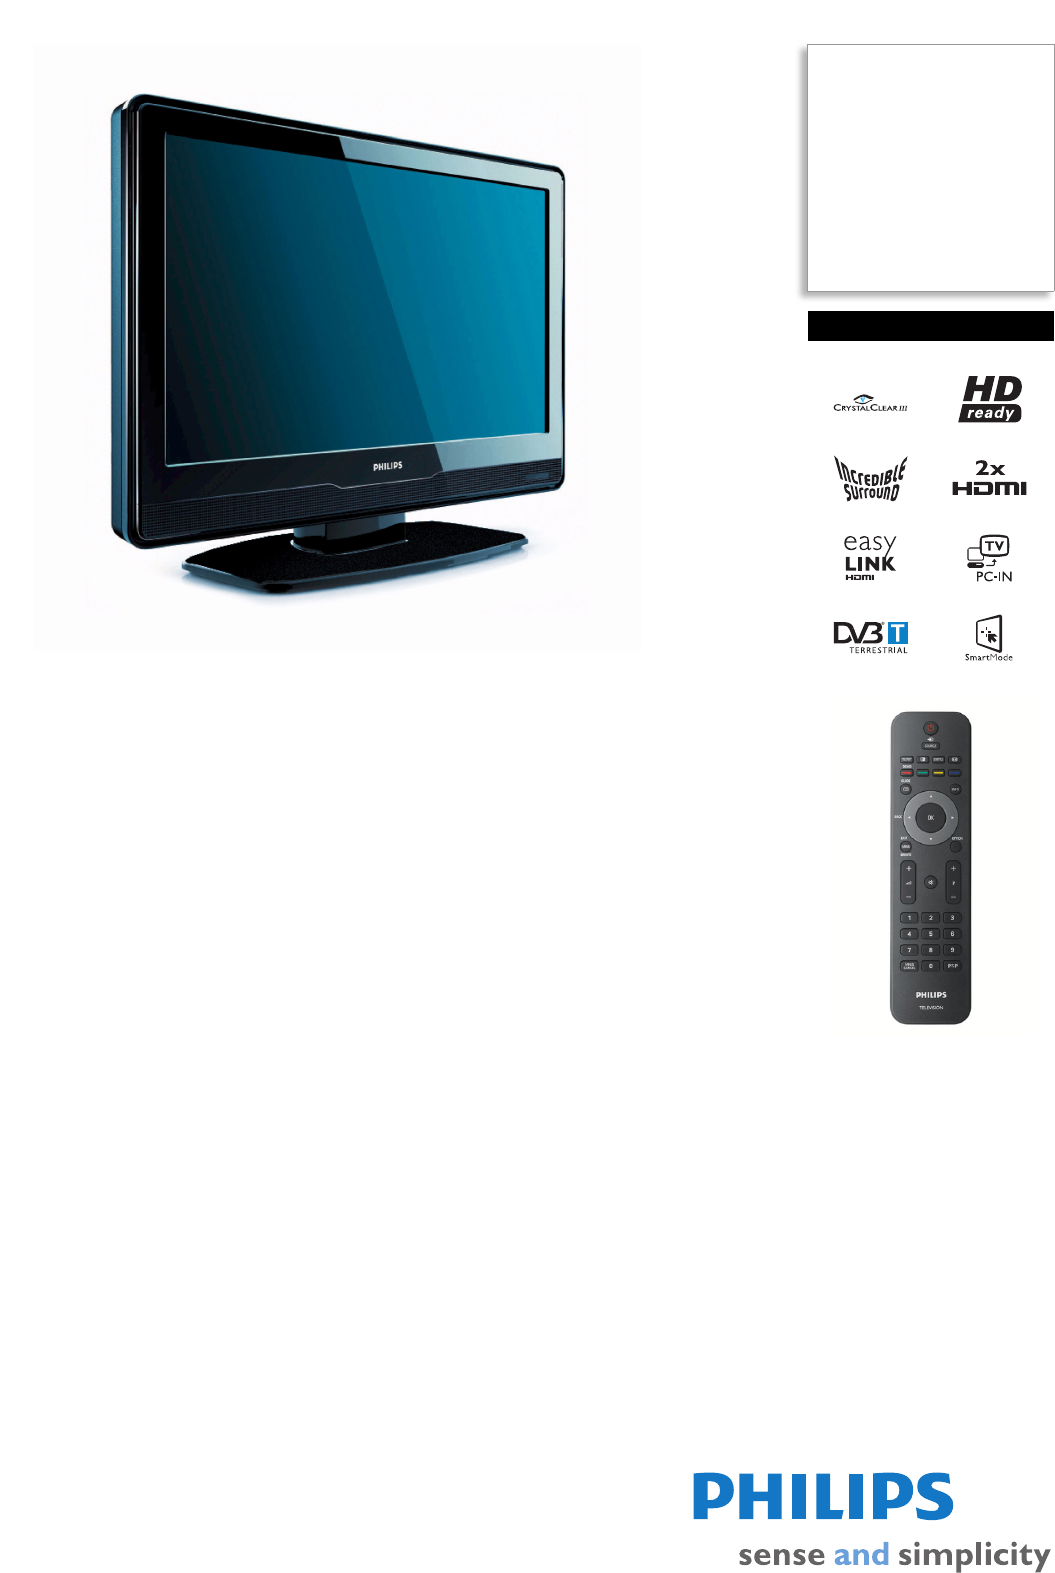 philips flat panel television 26pfl3403d user guide manualsonline com rh tv manualsonline com philips tv user manual model 60pl9200d/37 philips smart tv user manual